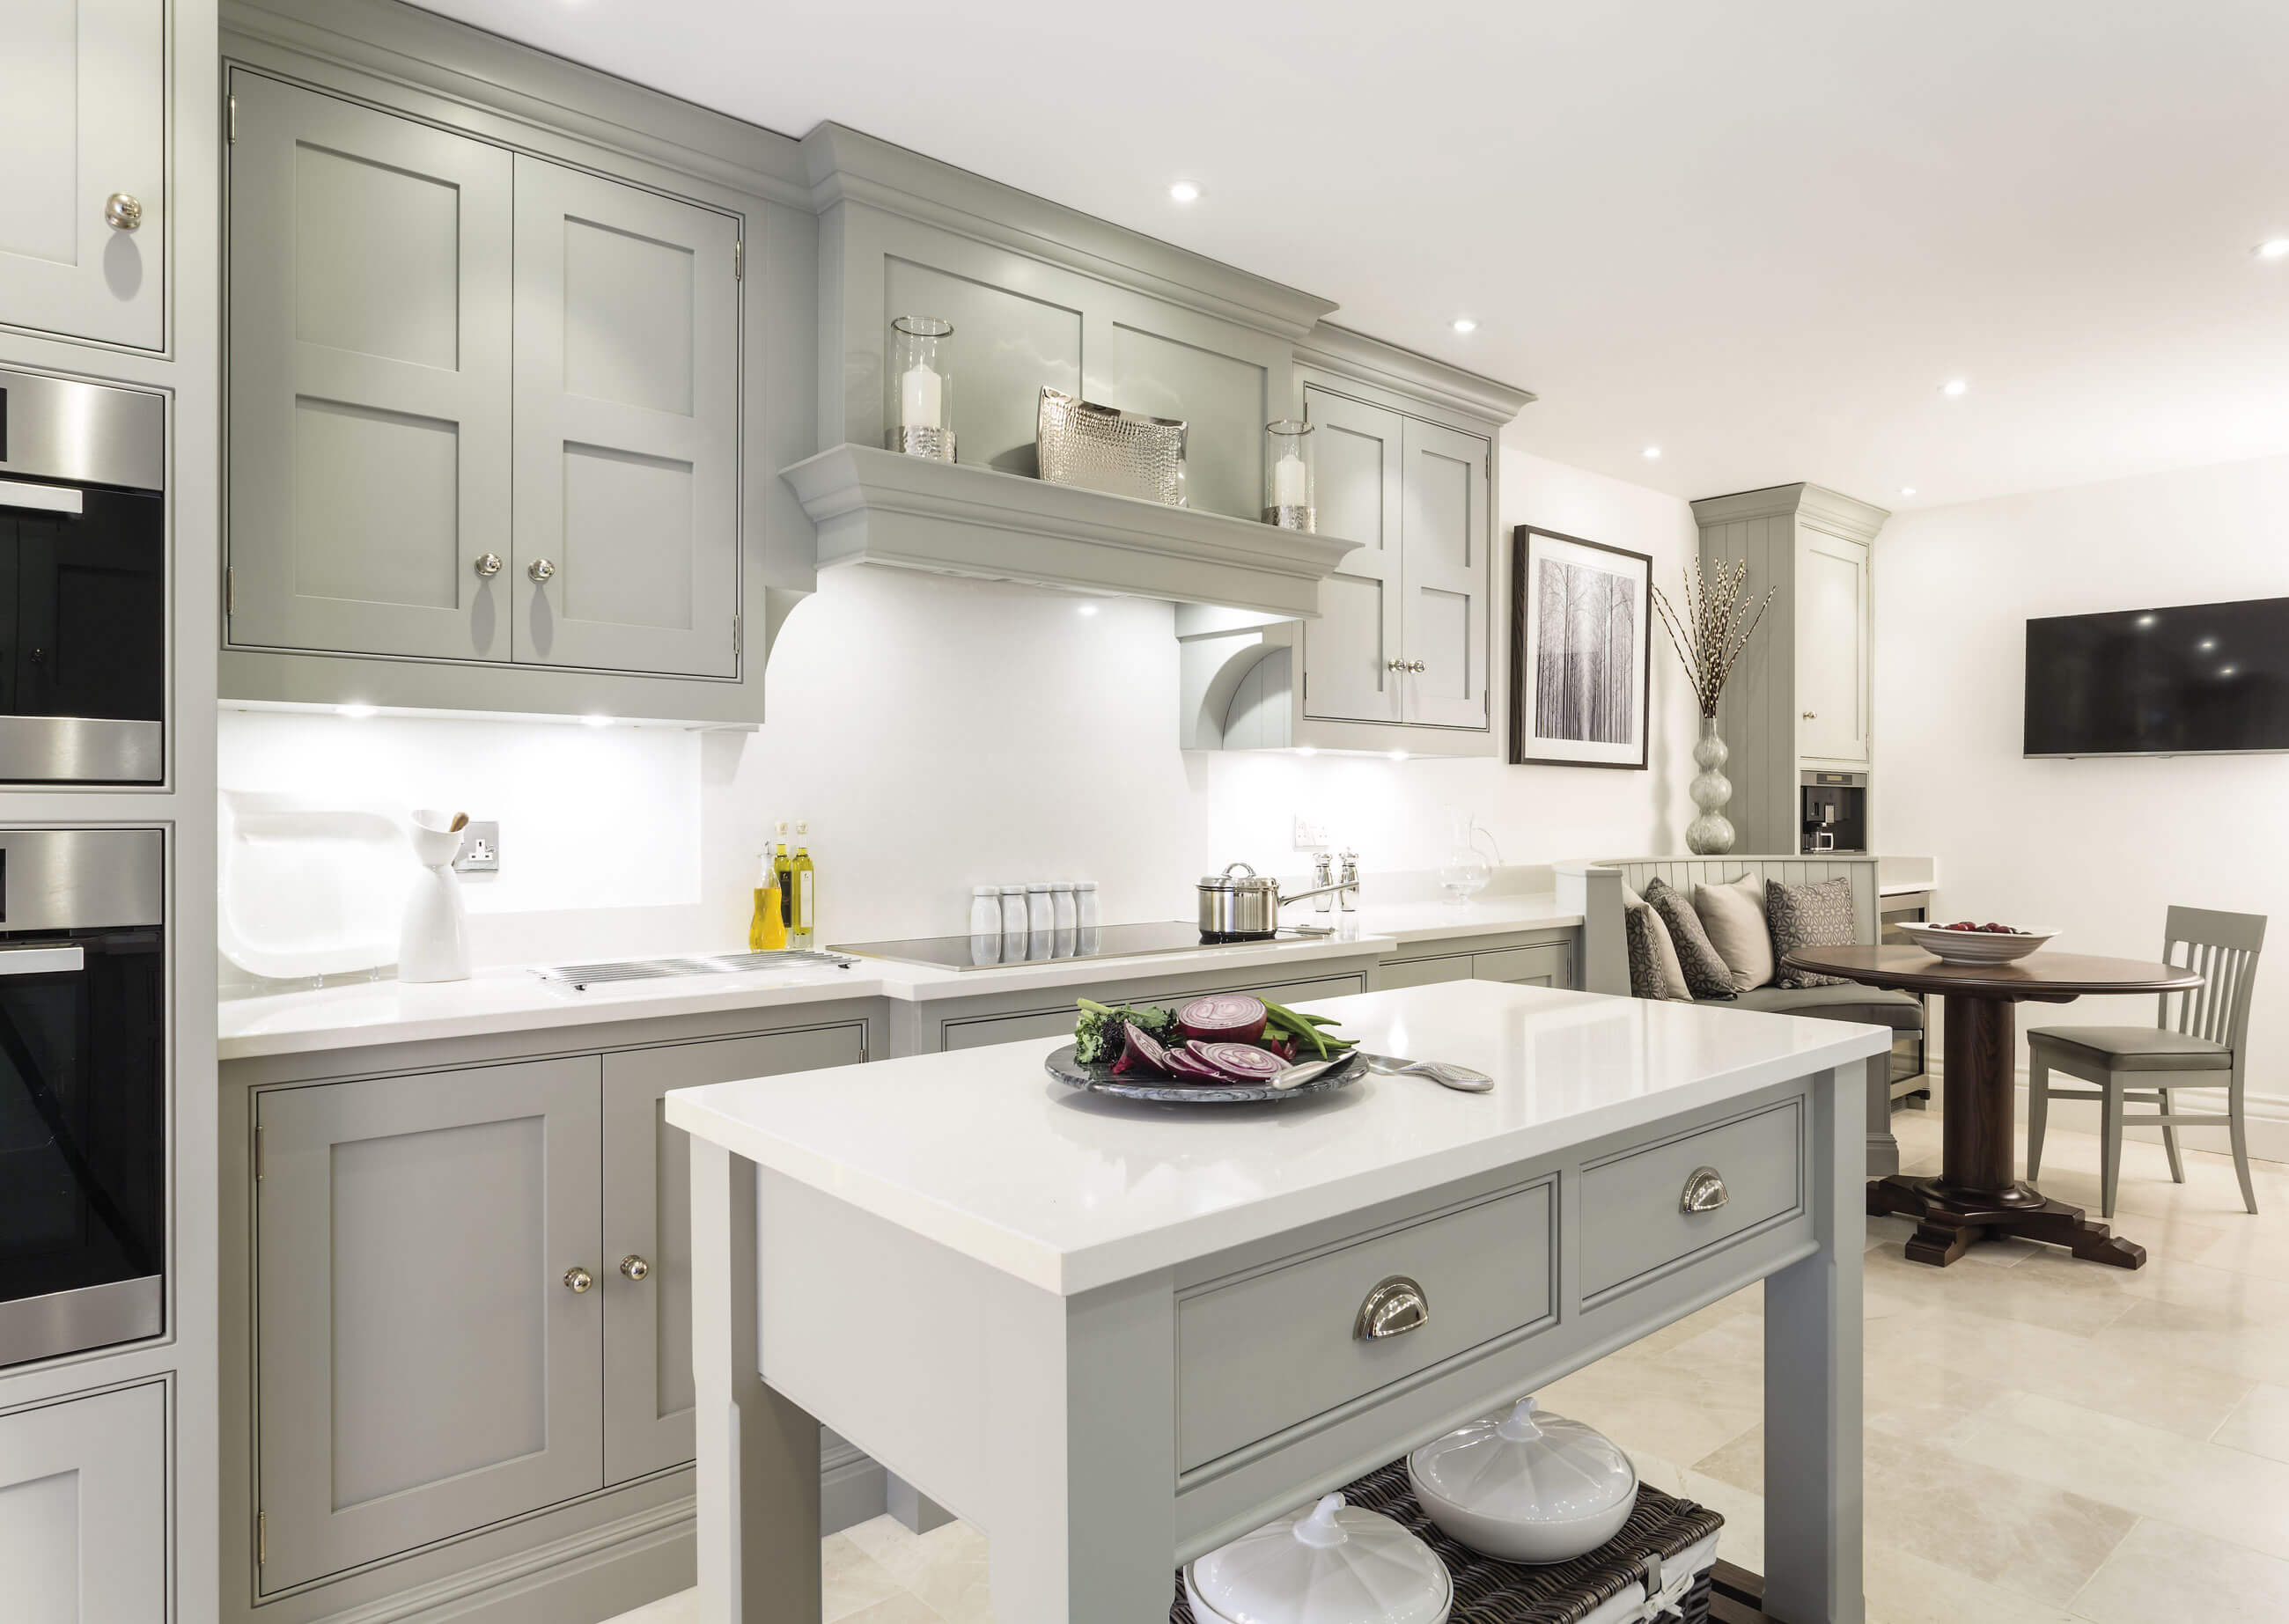 Kitchen diner design tom howley for Family kitchen design